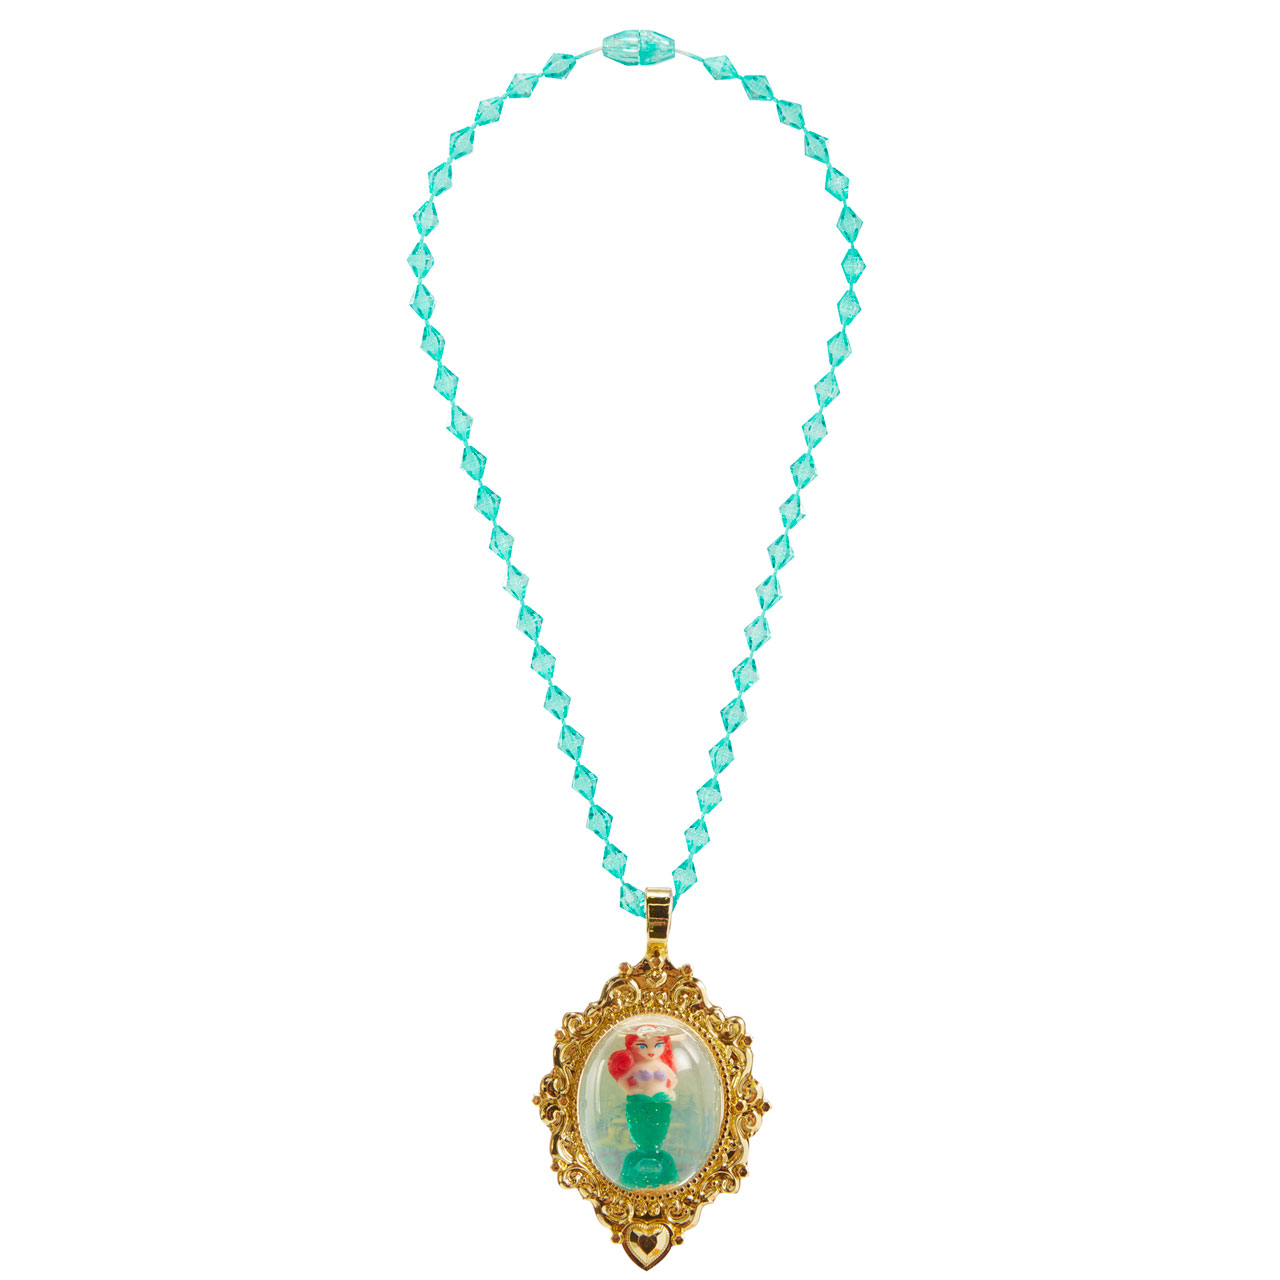 Toys For Boys 12 And Up : Disney princess little kingdom necklace